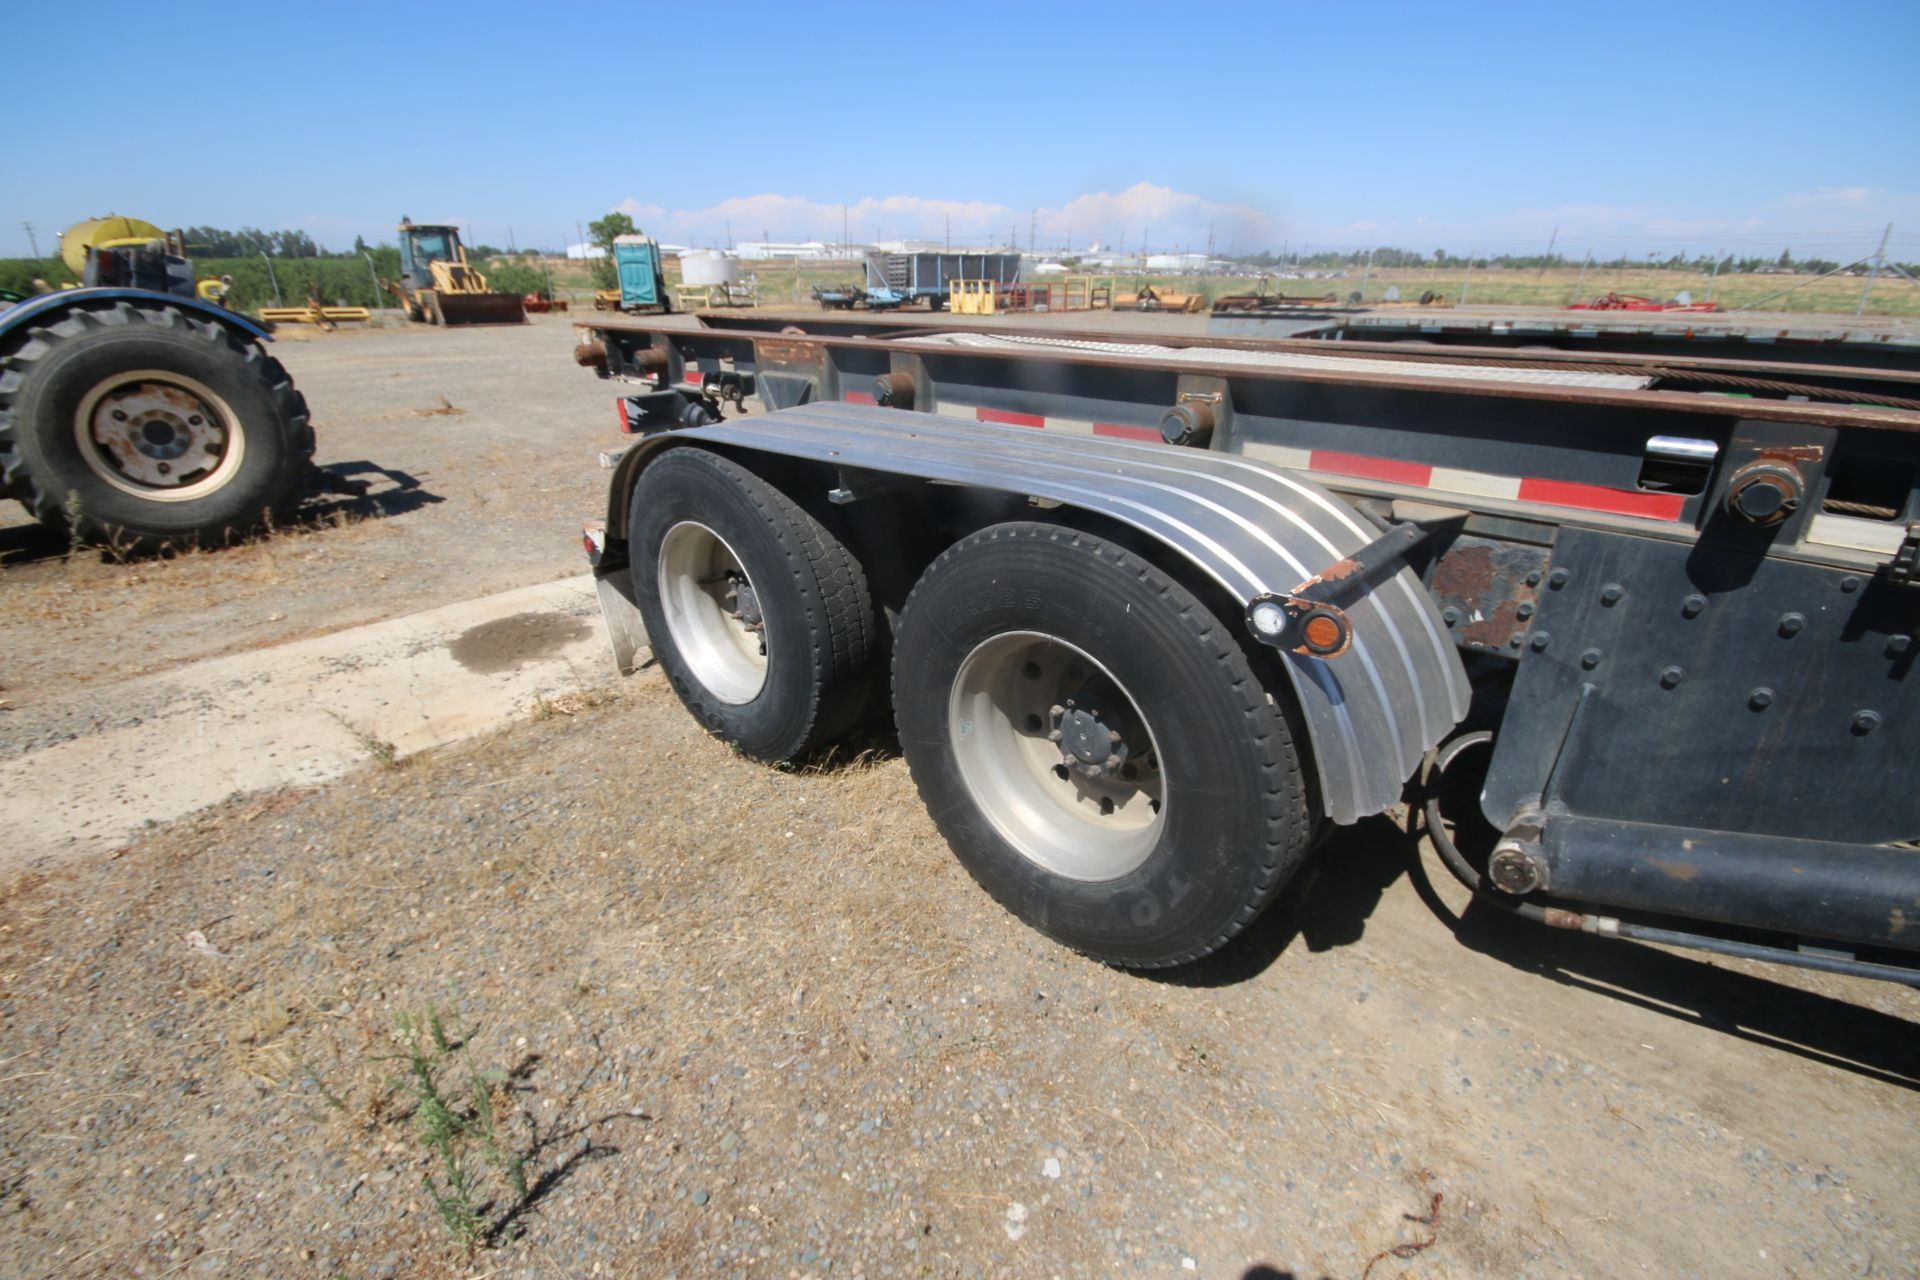 1996 Kenworth 3-Axle Roll-Off Straight Truck, VIN #: 1XKDDB9XOTS687107, with 24,722 Miles, License - Image 27 of 30